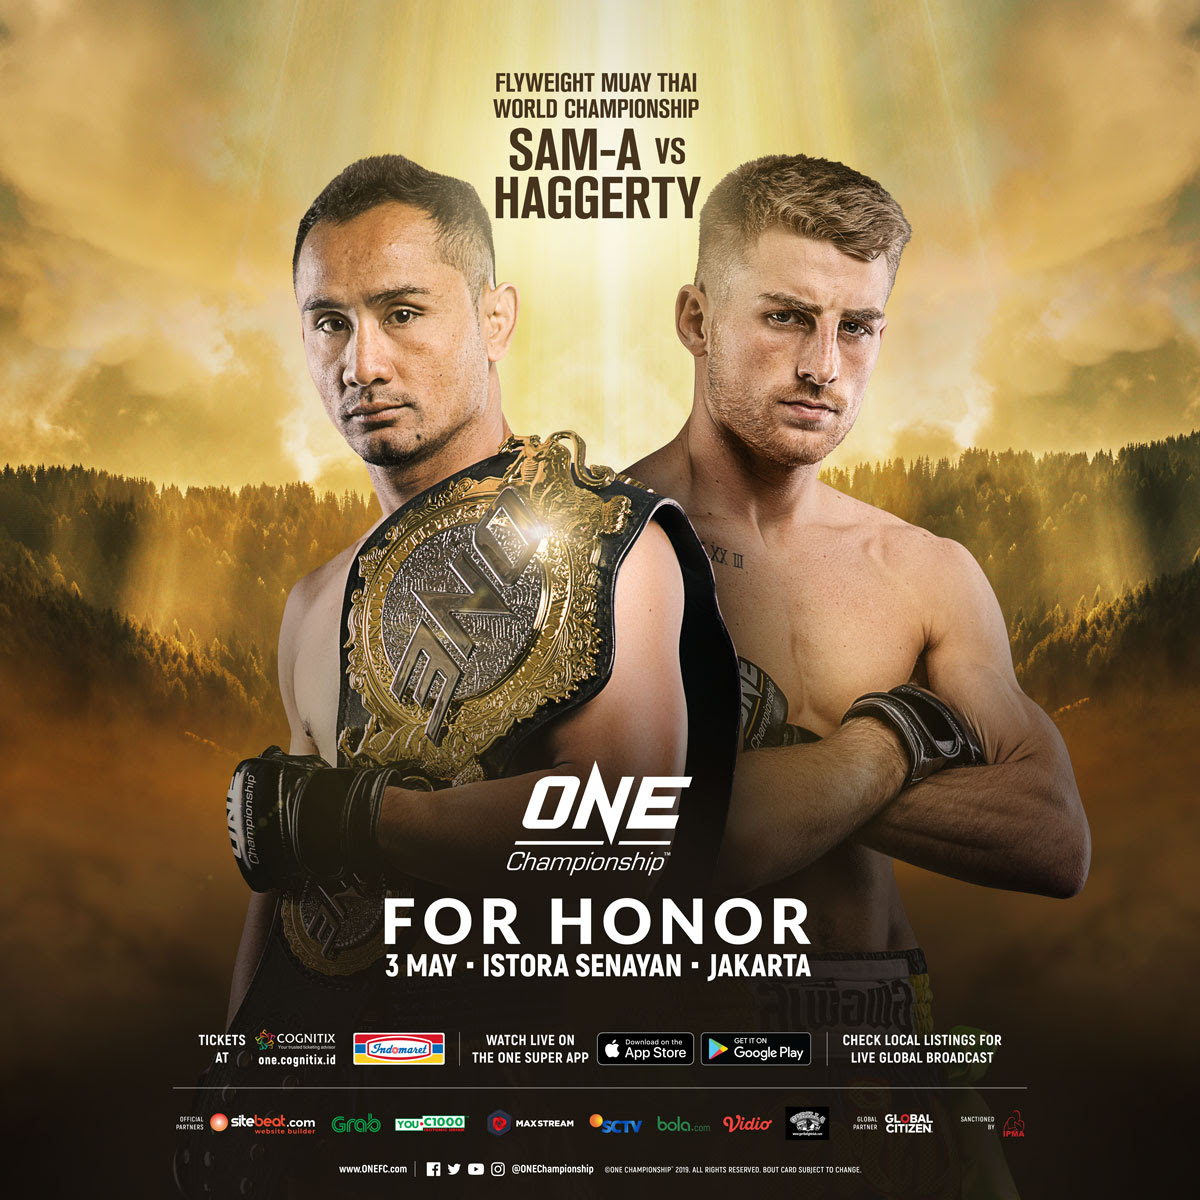 COMPLETE CARD ANNOUNCED FOR ONE: FOR HONOR IN JAKARTA ON 3 MAY -